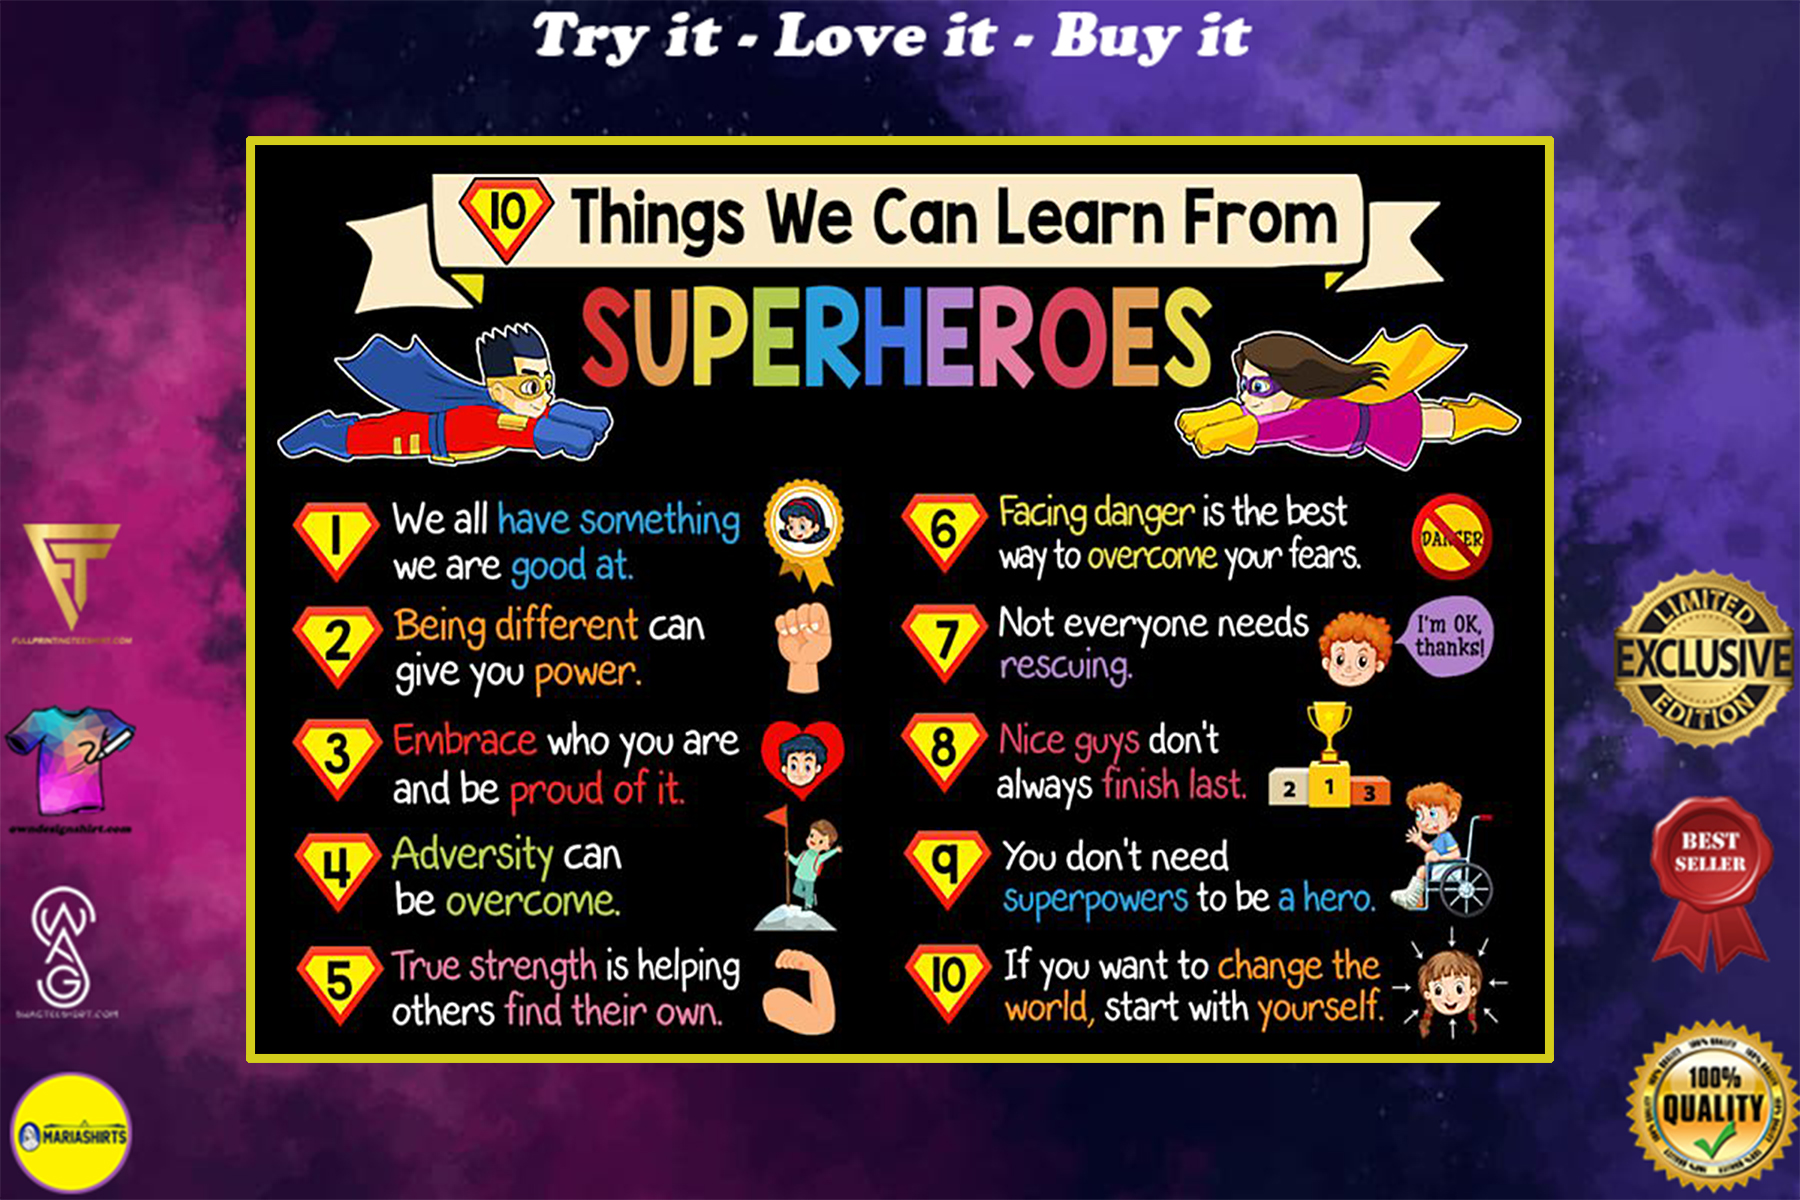 10 things we can learn from superheroes poster